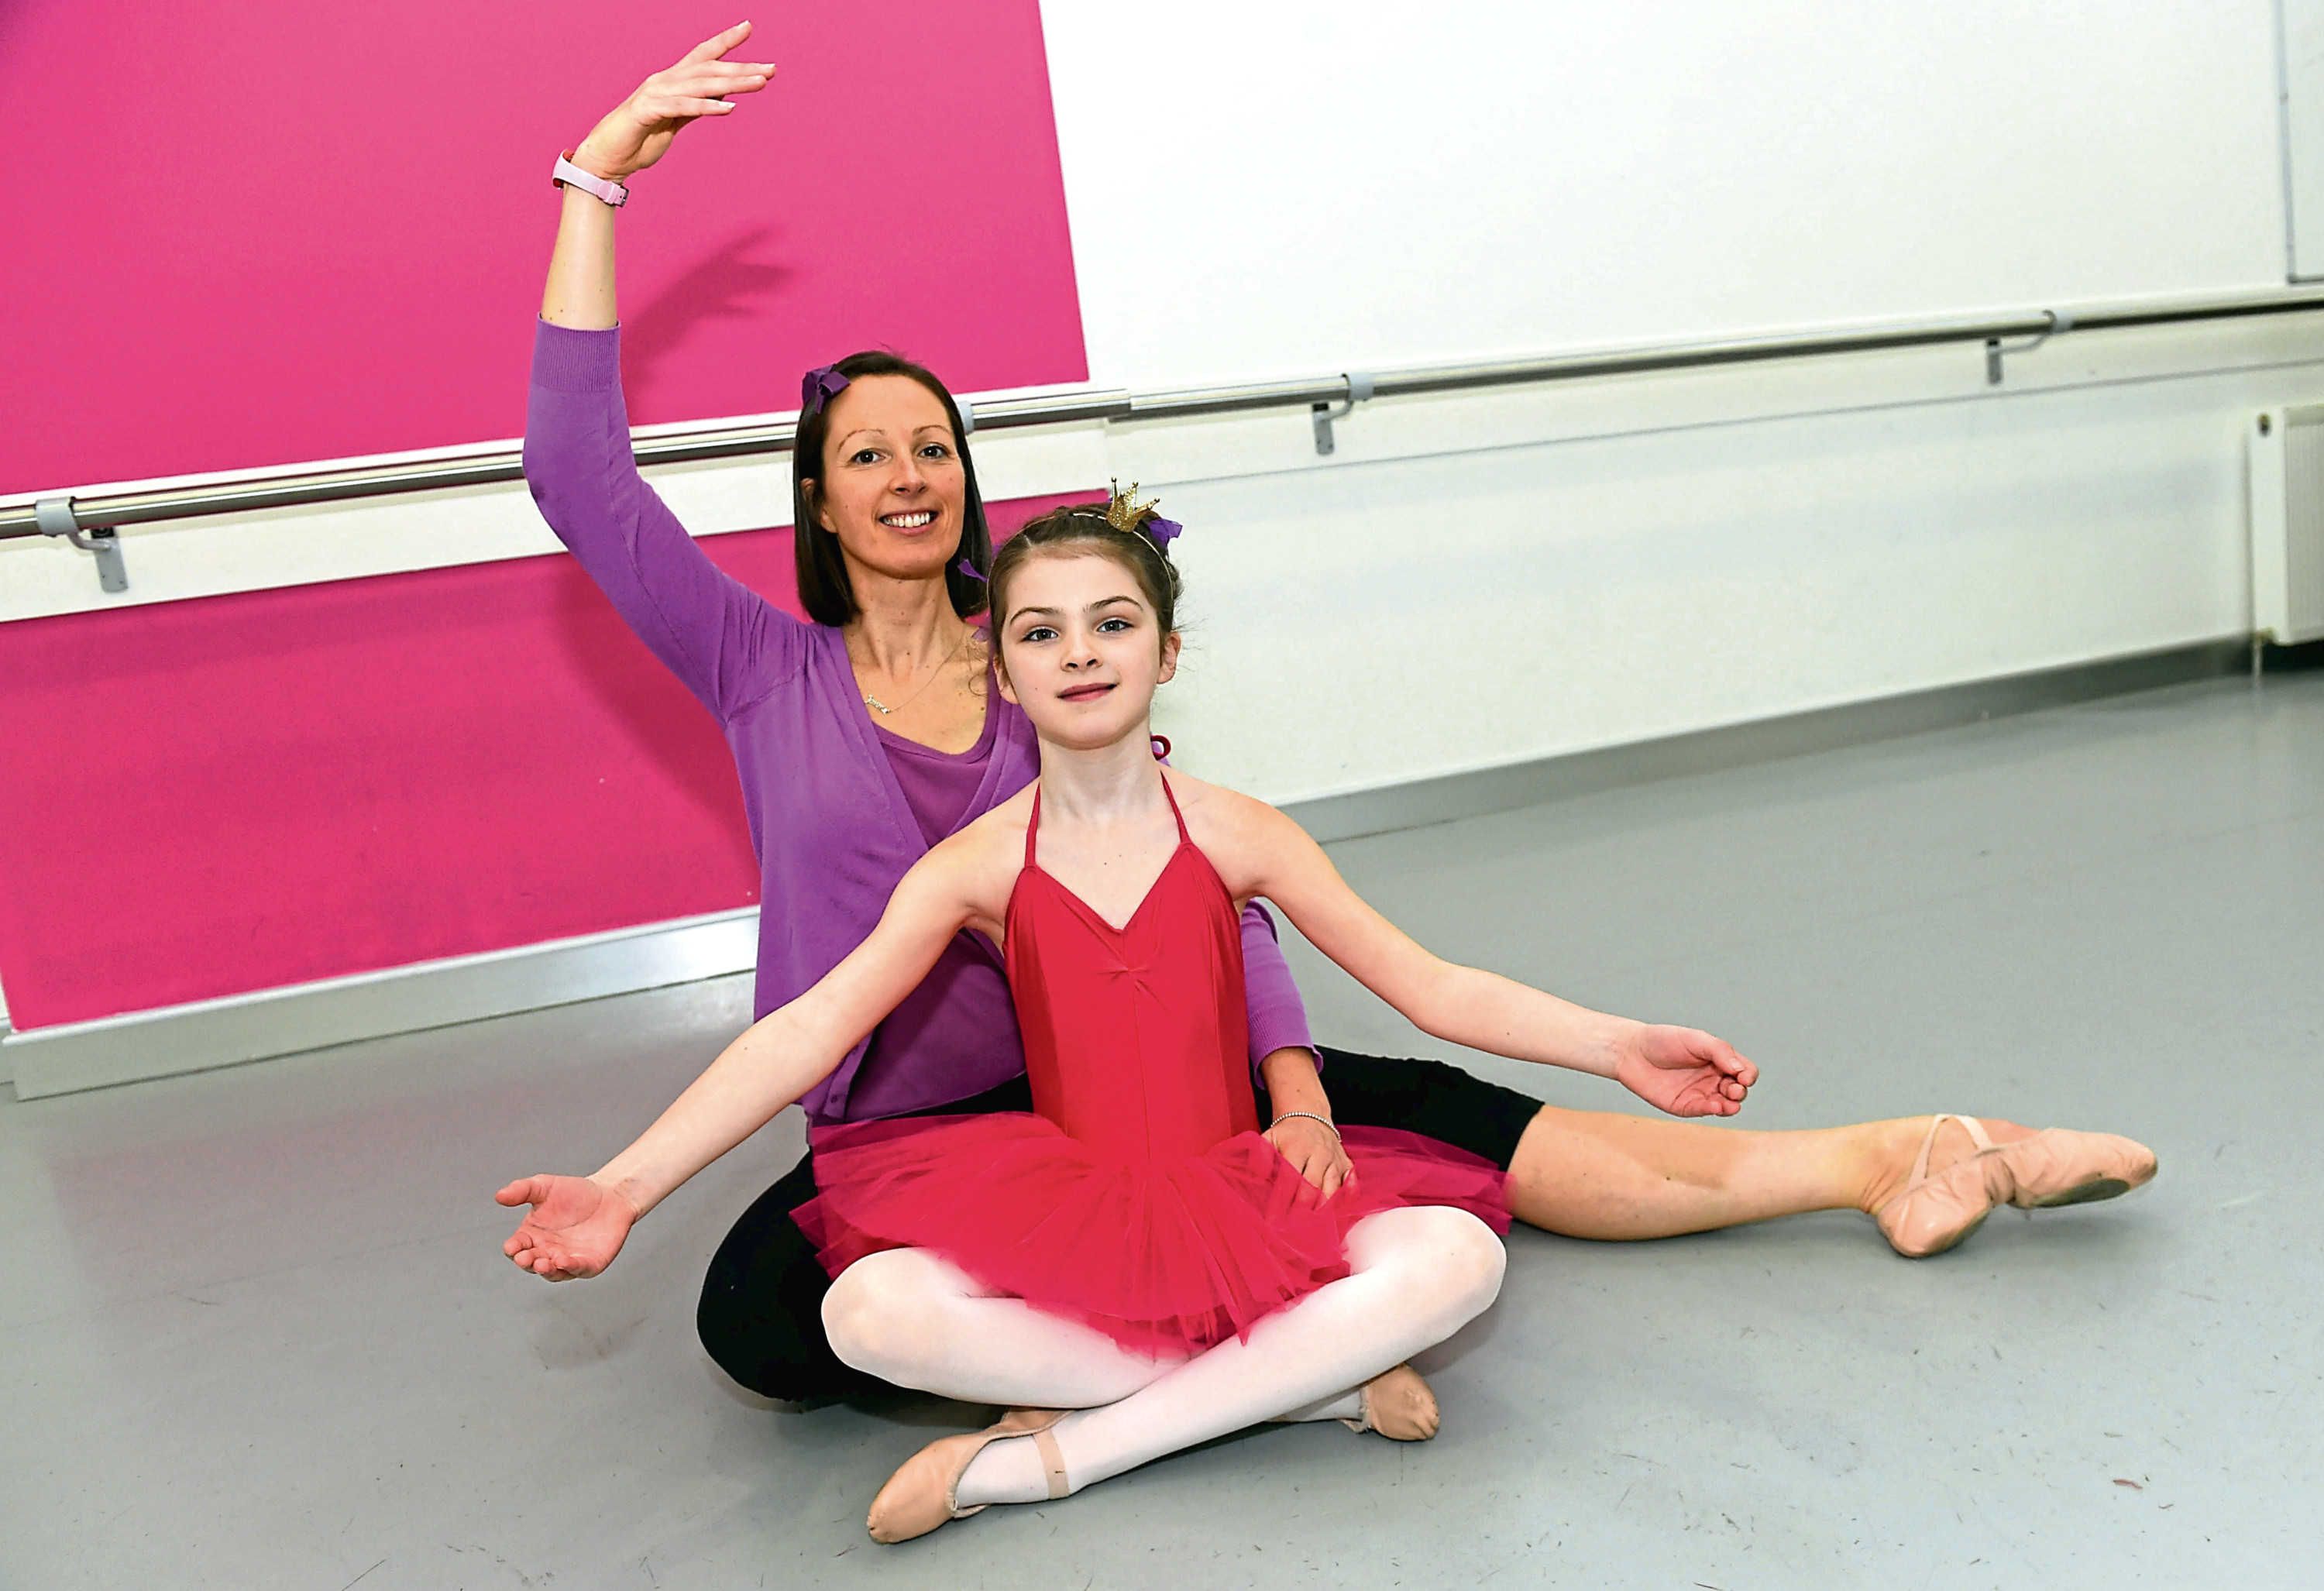 Ballet teacher Jemma McRae found it hard to keep the surprise from her eight-year-old daughter Izzy